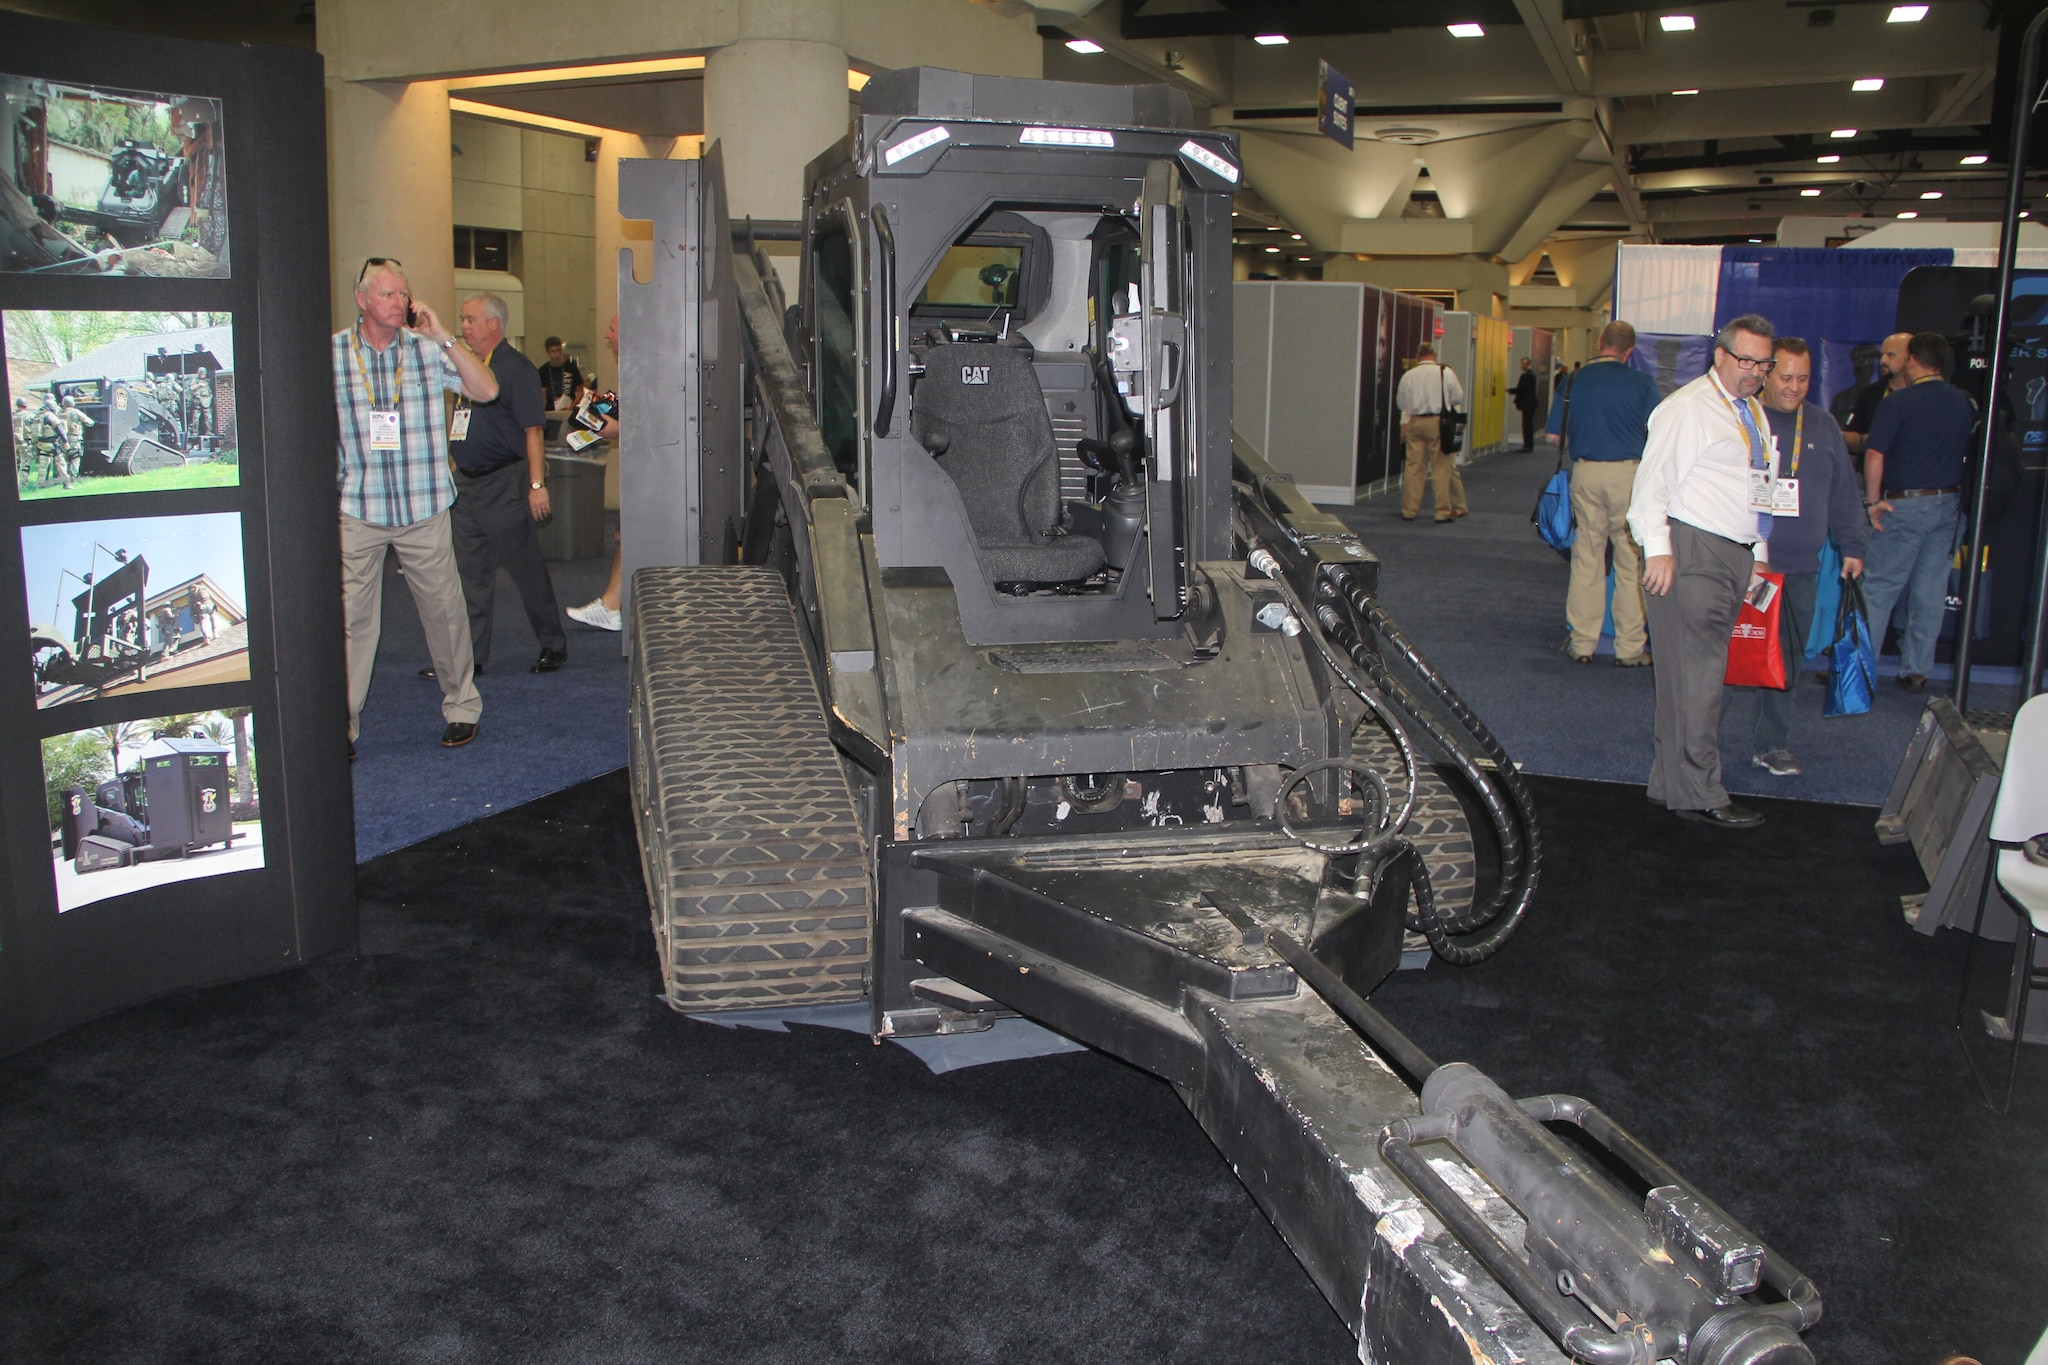 The Rook used in the San Bernardino terrorist shootout was on display during the National Association of Police Chiefs annual convention in San Diego Oct. 15-18, 2015. (Photo: Jared Morgan / Guns.com)